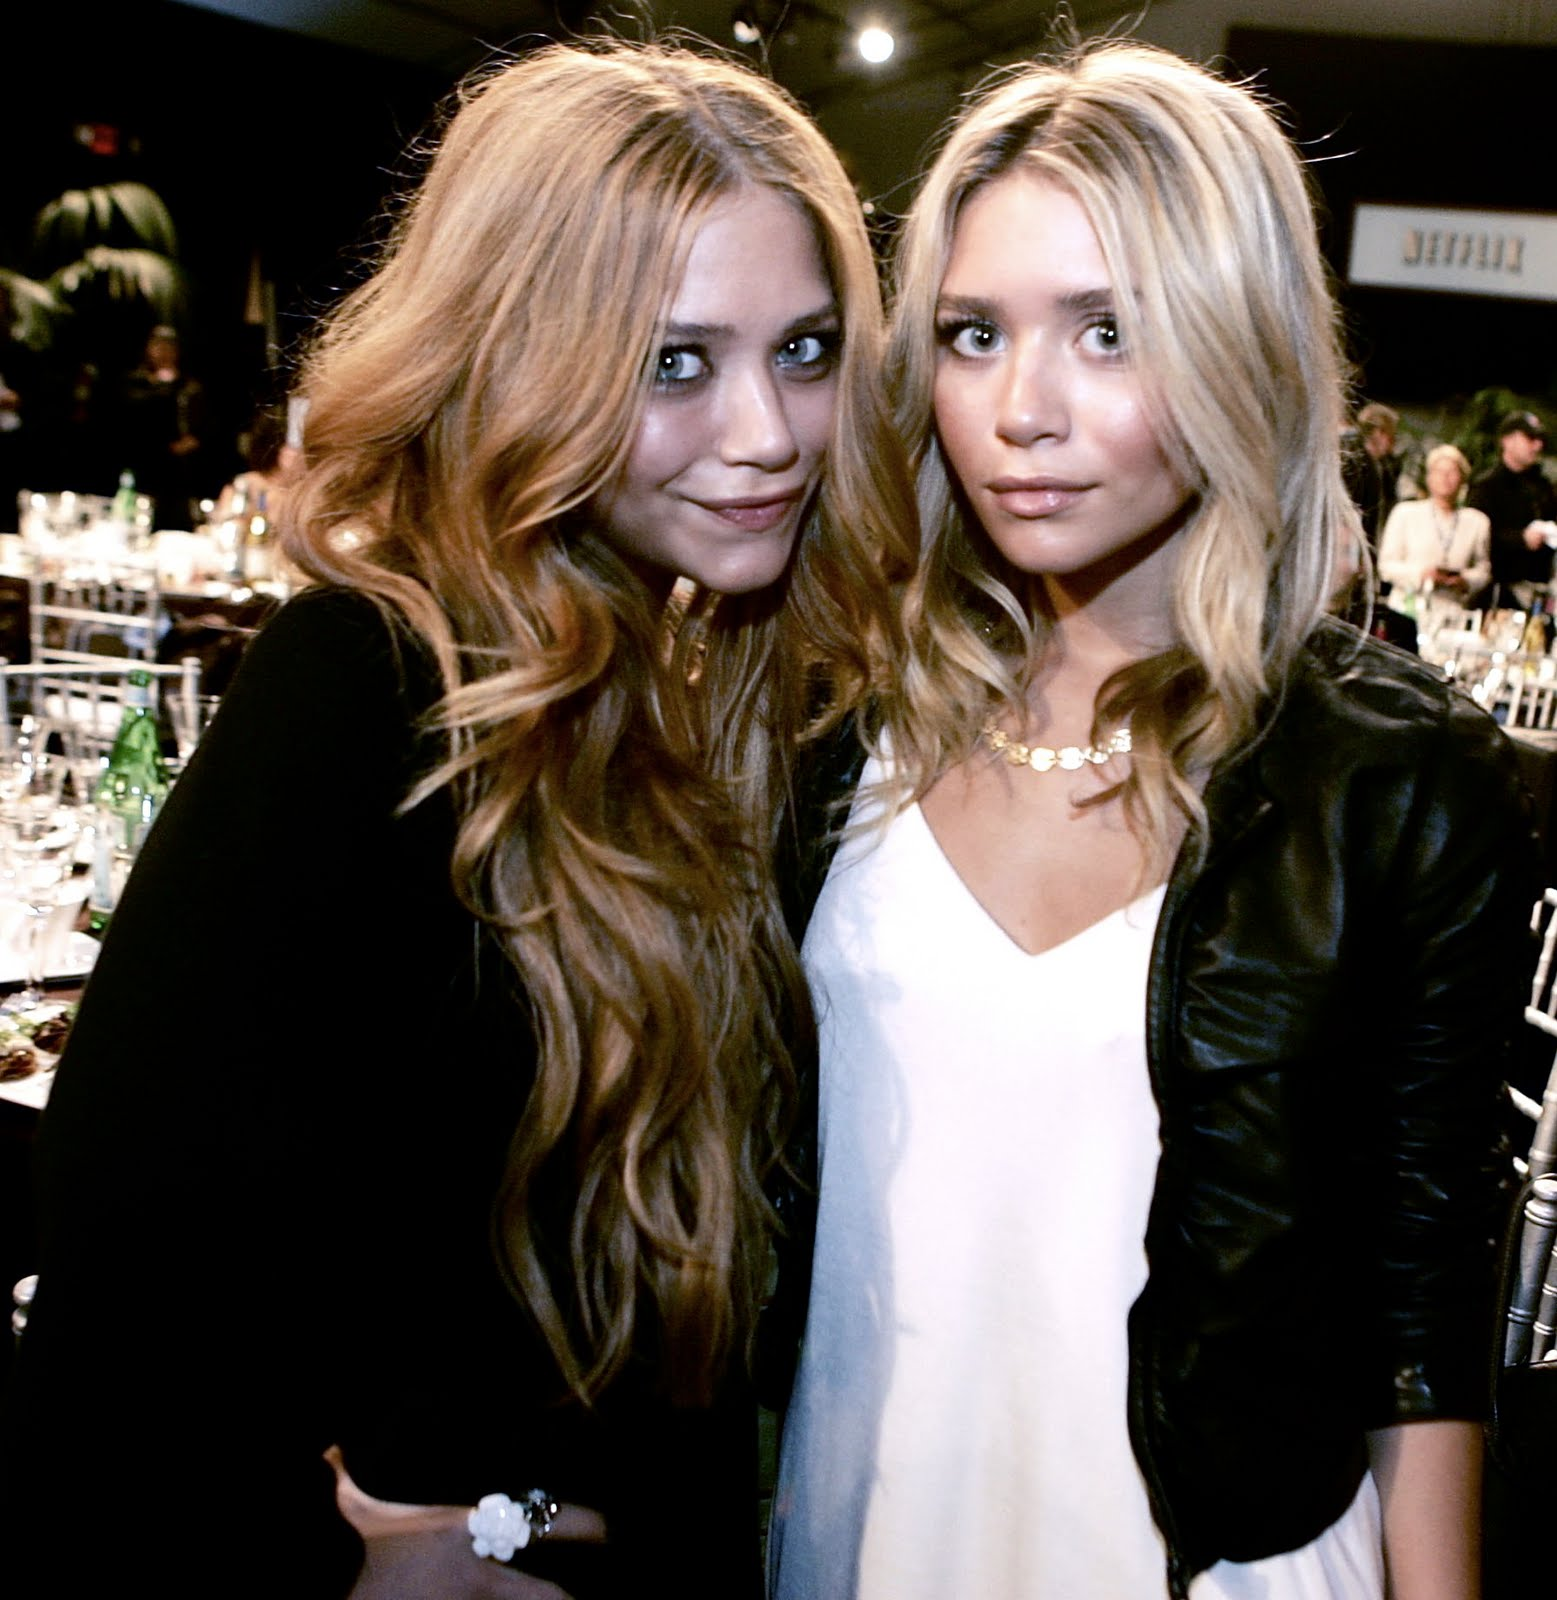 http://3.bp.blogspot.com/_STIFfaIpdHk/TJQhSc4fXZI/AAAAAAAACNk/-p6ZQkVum2w/s1600/Olsen-mary-kate-and-ashley-olsen-6342418-1793-1843.jpg